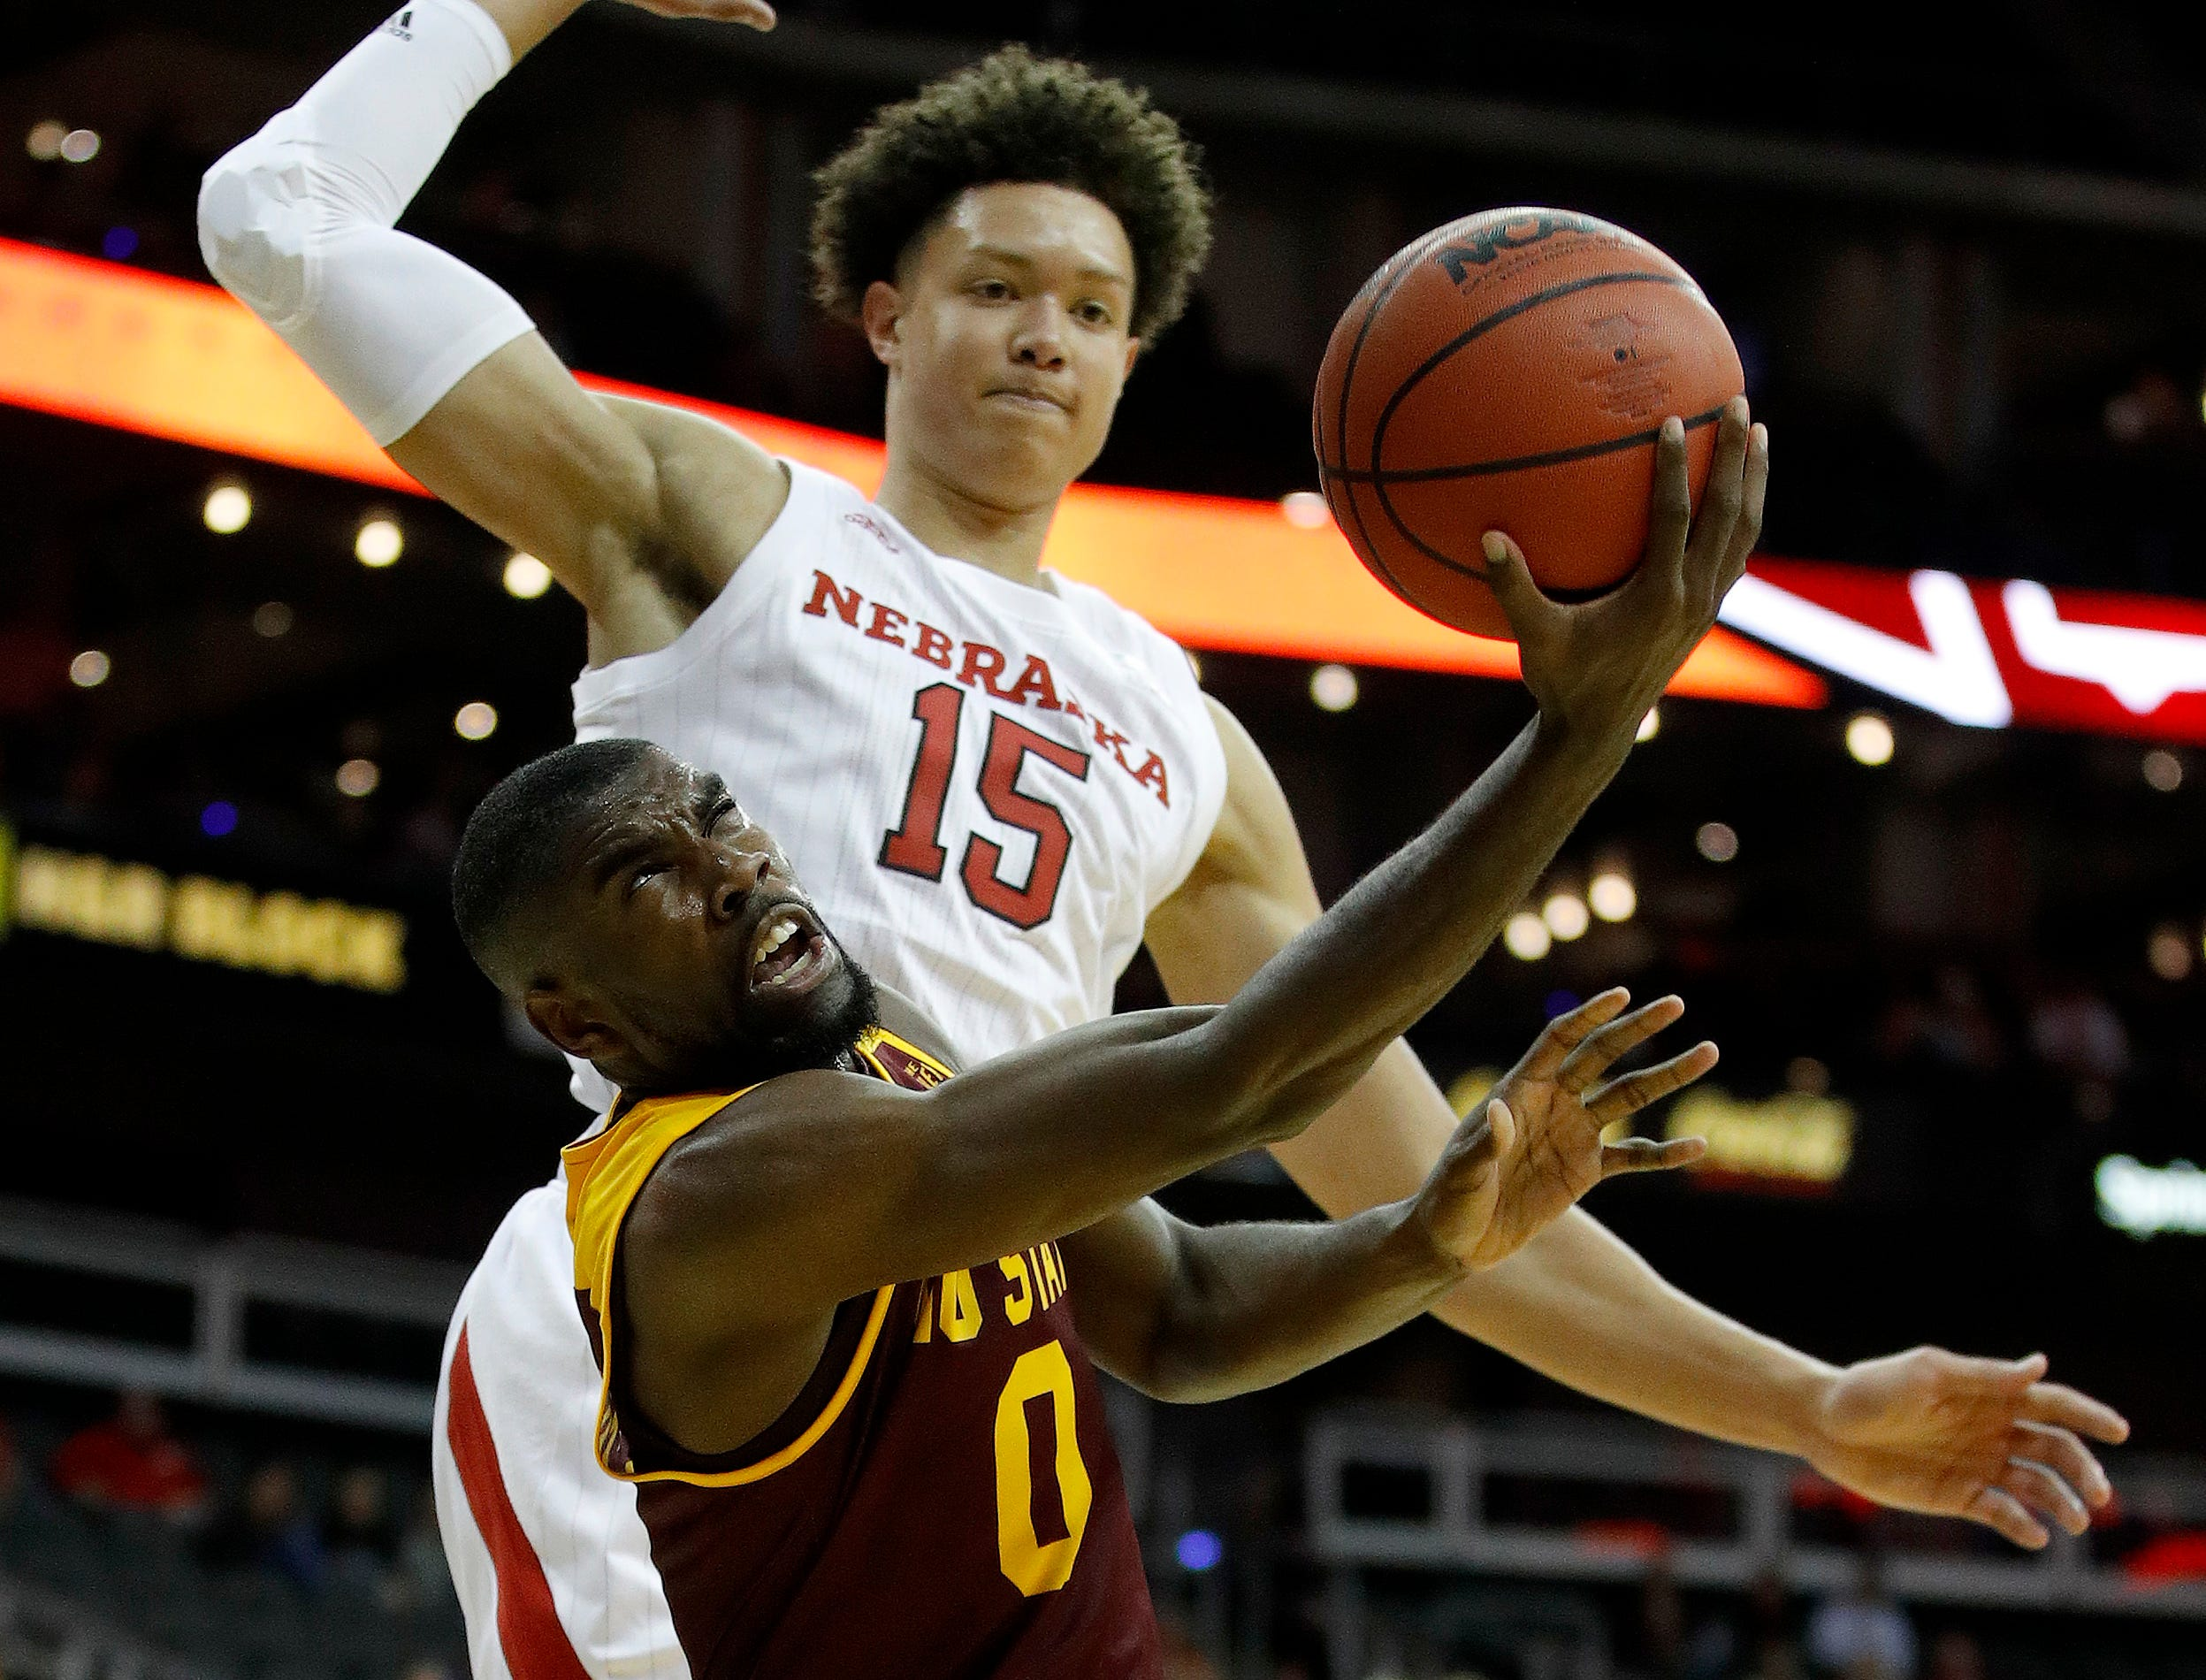 Missouri State's Josh Webster (0) shoots under pressure from Nebraska's Isaiah Roby (15) during the second half of an NCAA college basketball game Monday, Nov. 19, 2018, in Kansas City, Mo. Nebraska won the game 85-62. (AP Photo/Charlie Riedel)